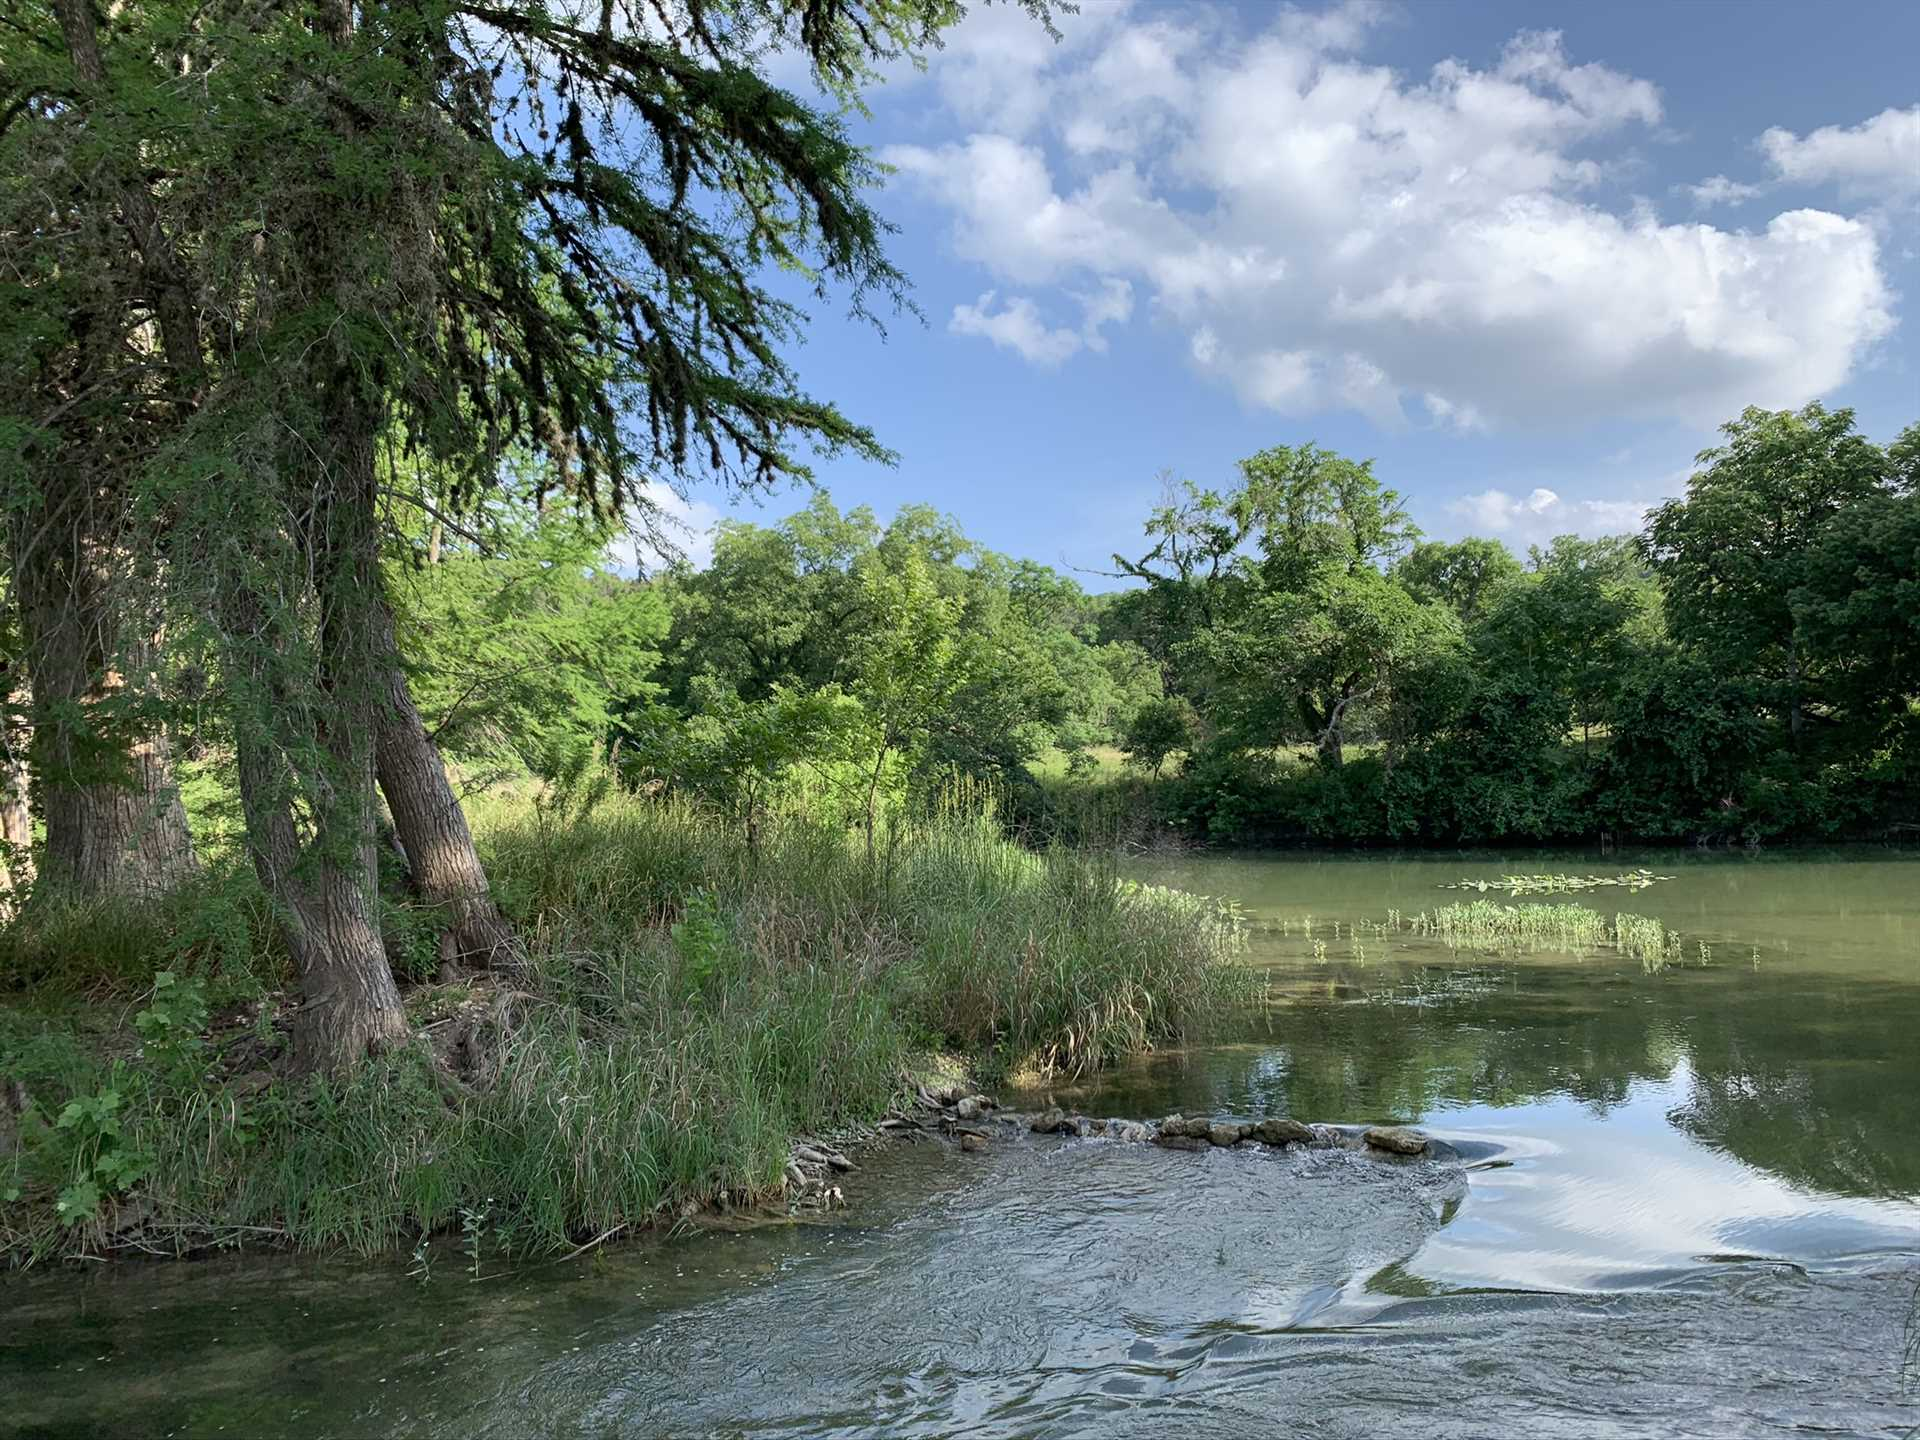 Whether you're on the river or alongside it, you'll be surrounded by Hill Country beauty.